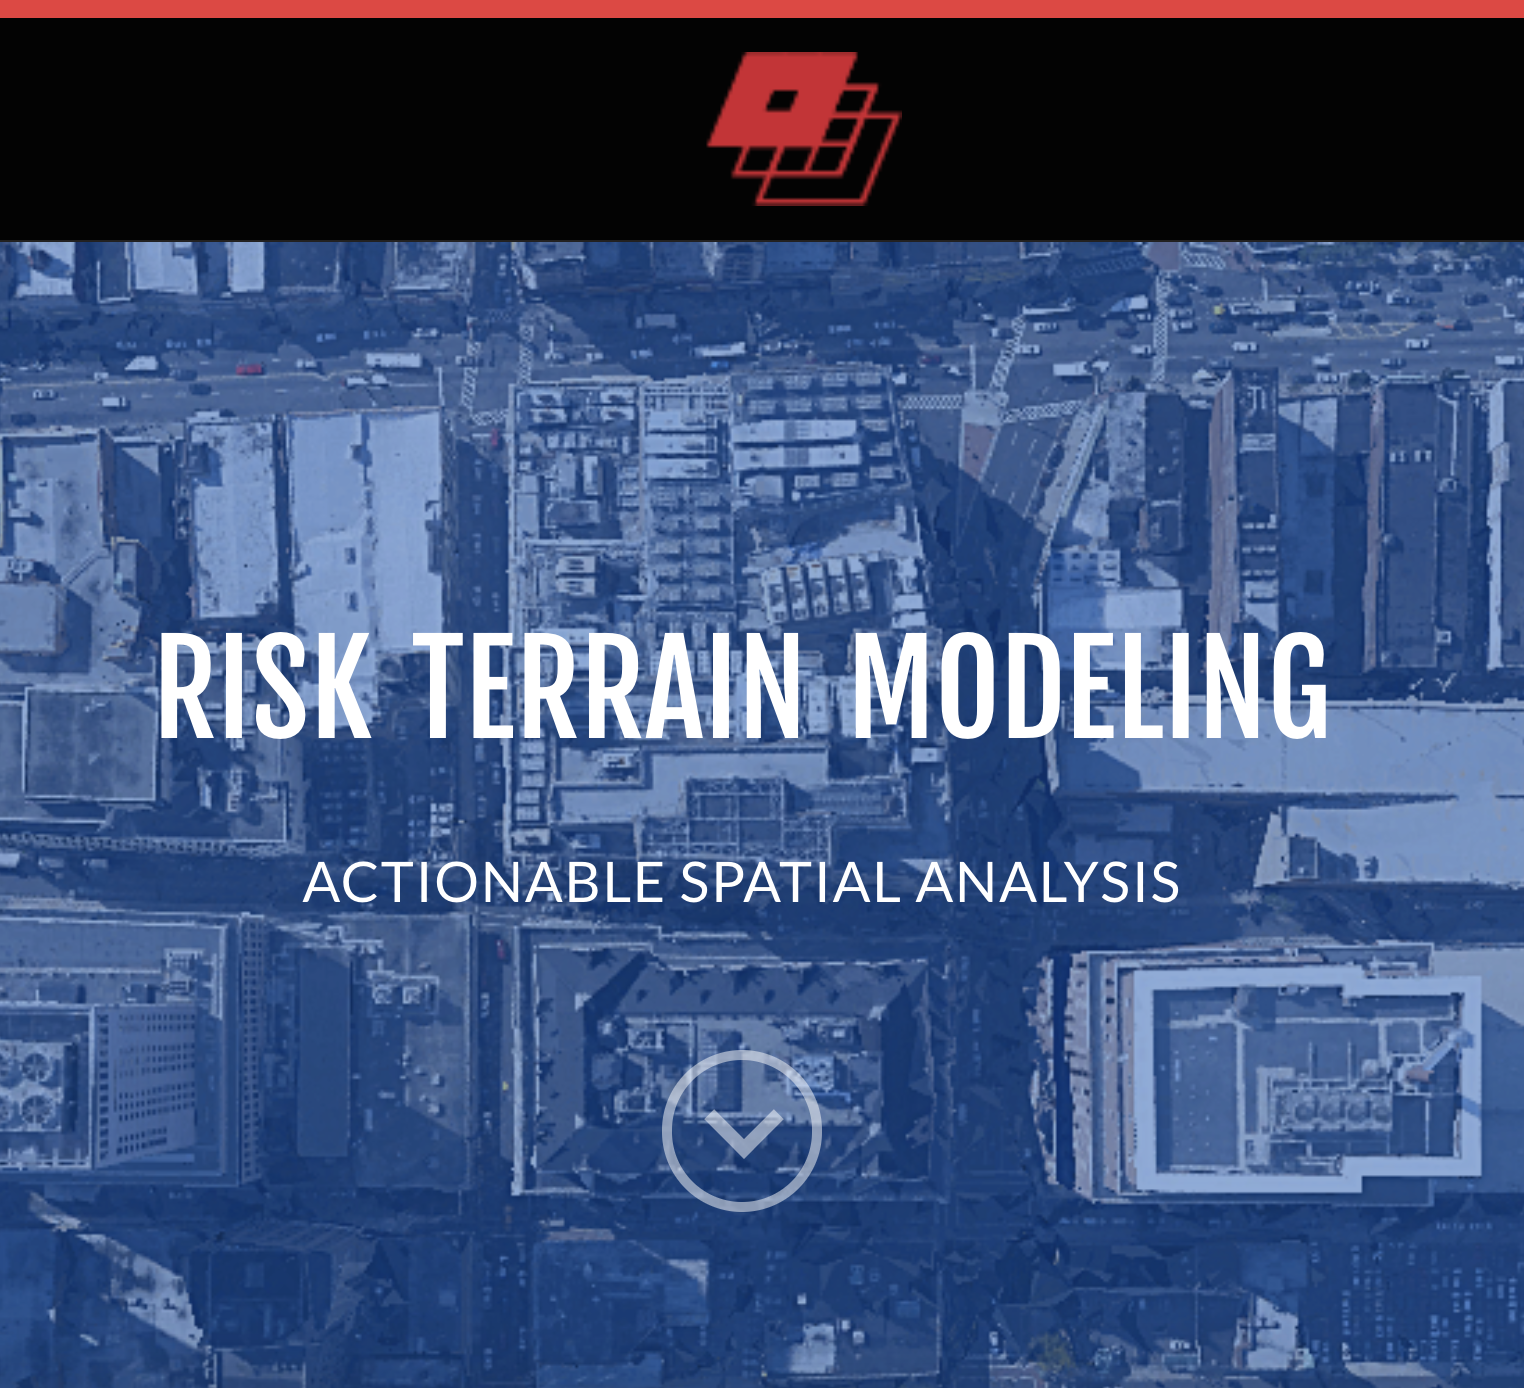 Risk terrain modeling is data-driven policing, spurred by the development of the RTM software by the Rutgers Center on Public Security. Source: Riskterrainmodeling.com